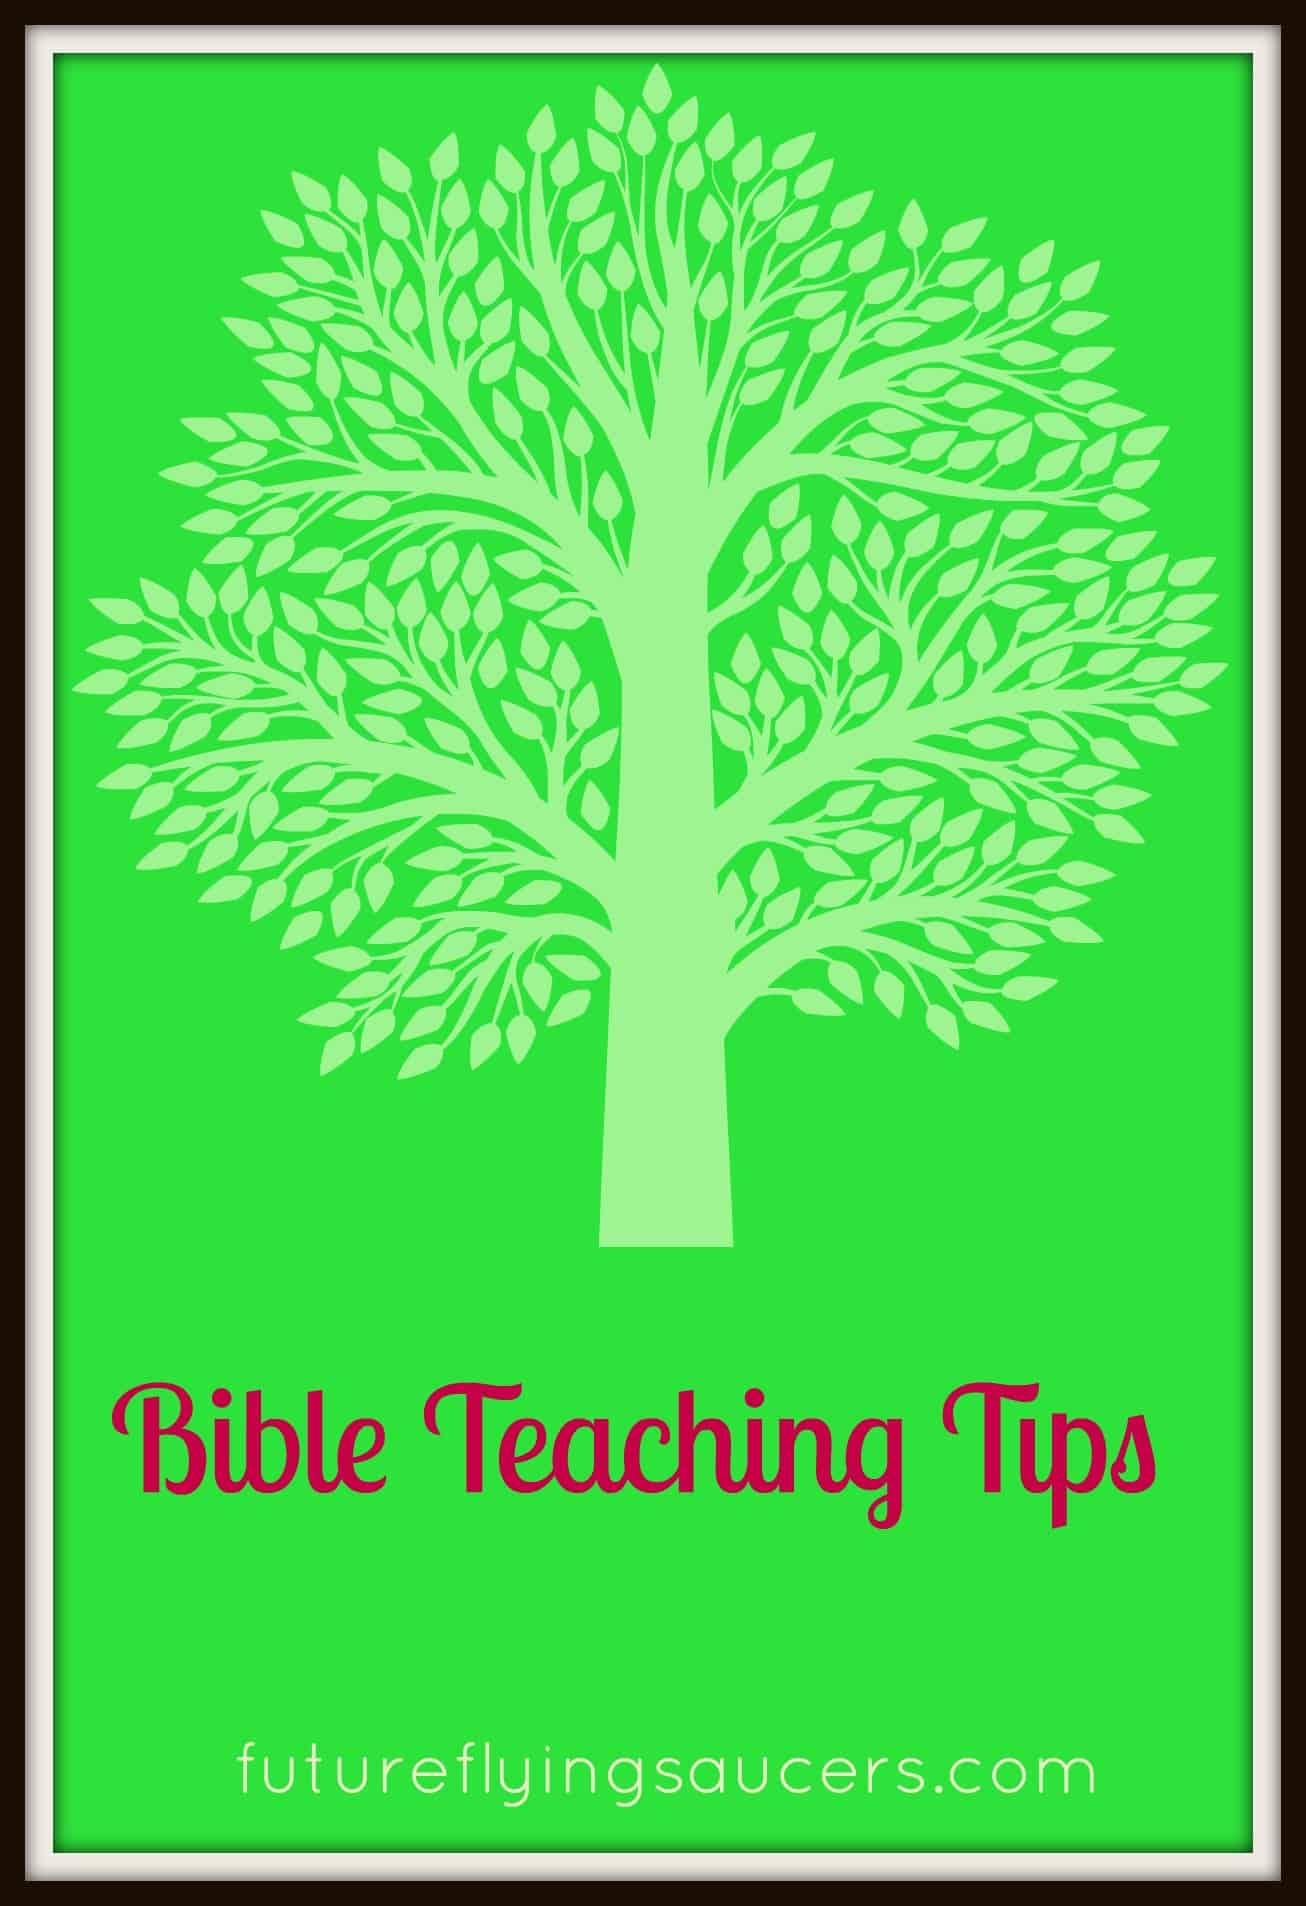 bible teaching tips future flying saucers